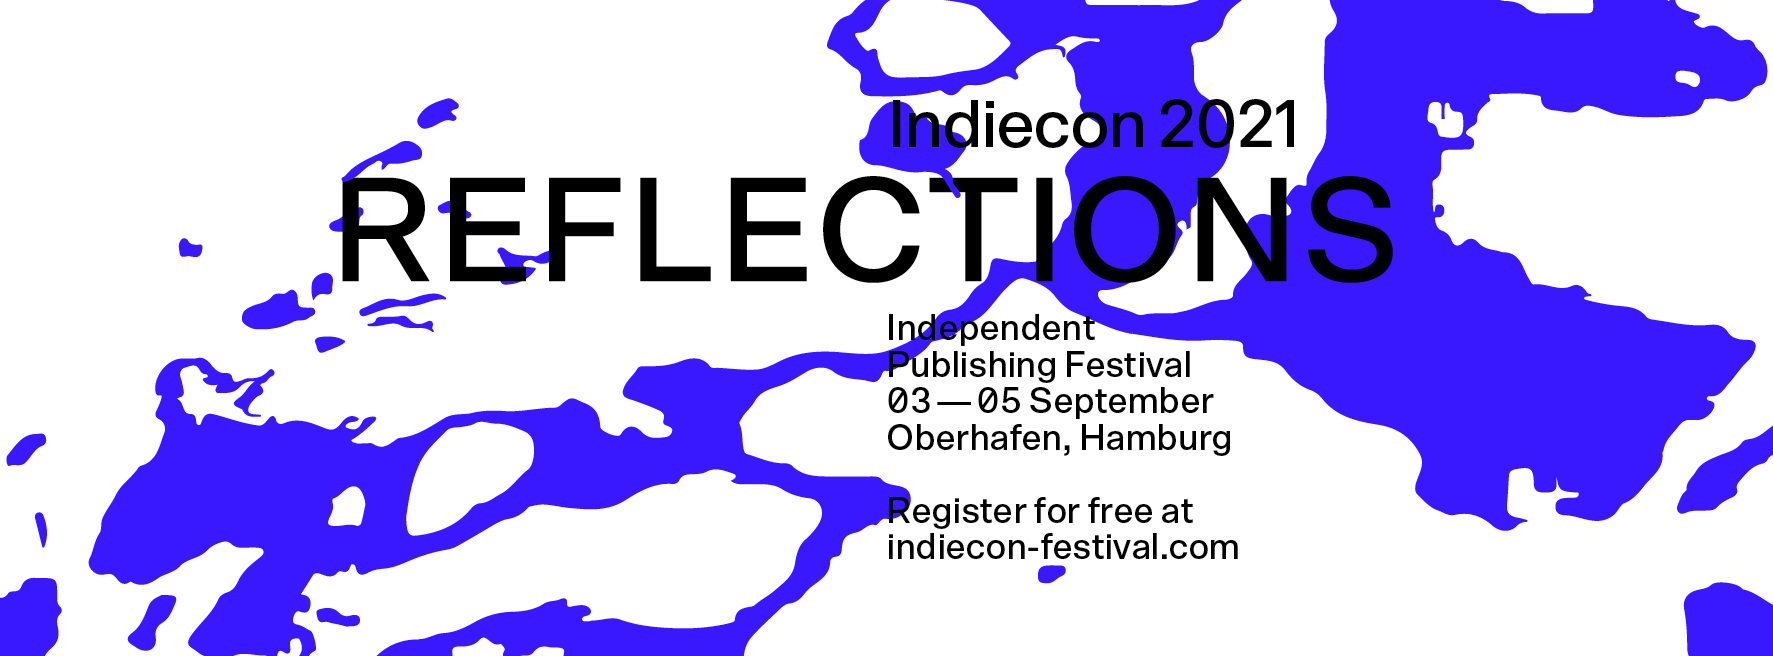 Indiecon 2021